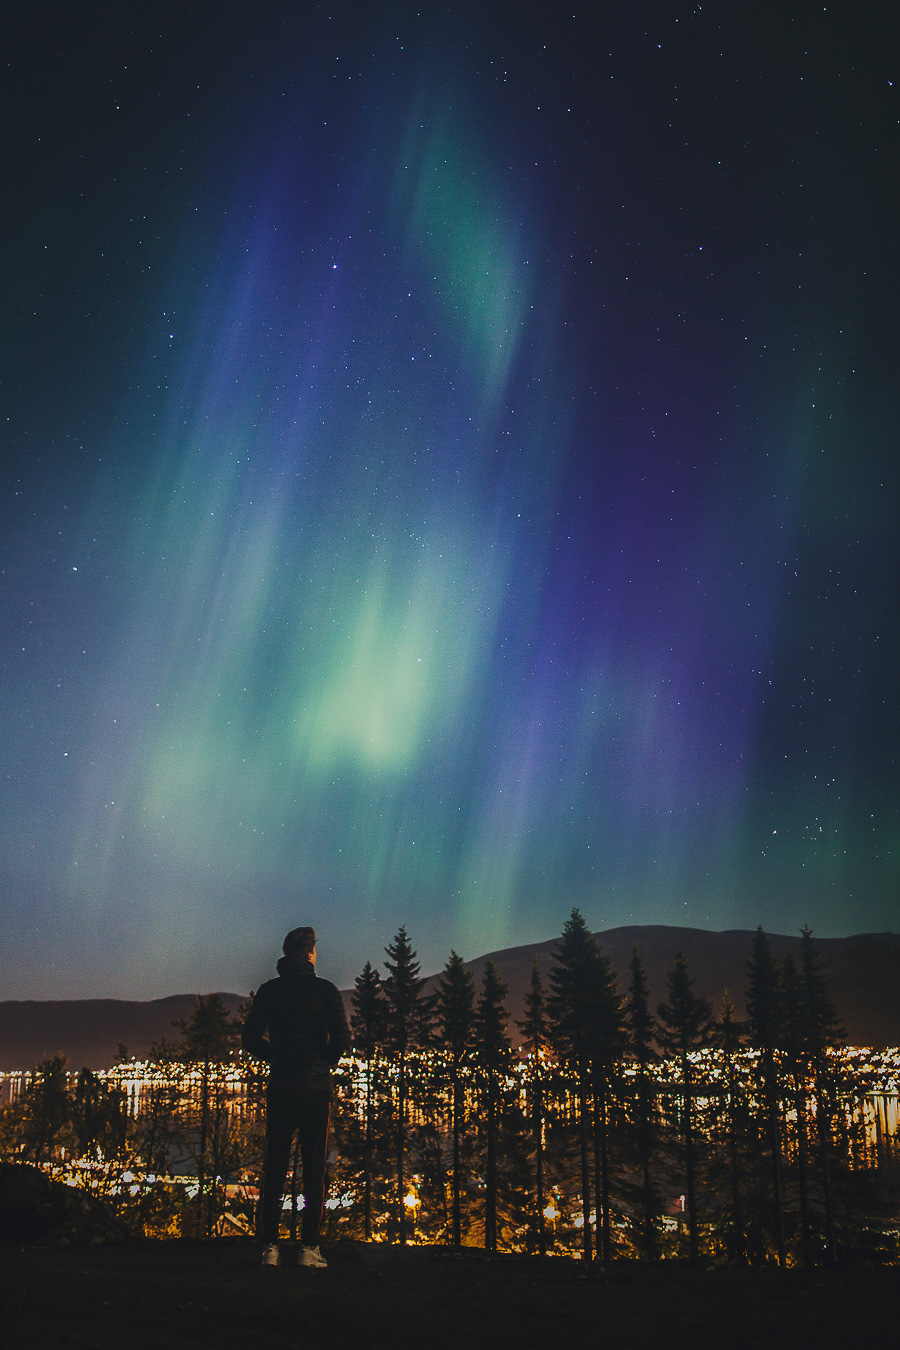 Boy staring at the northern lights dancing on the sky